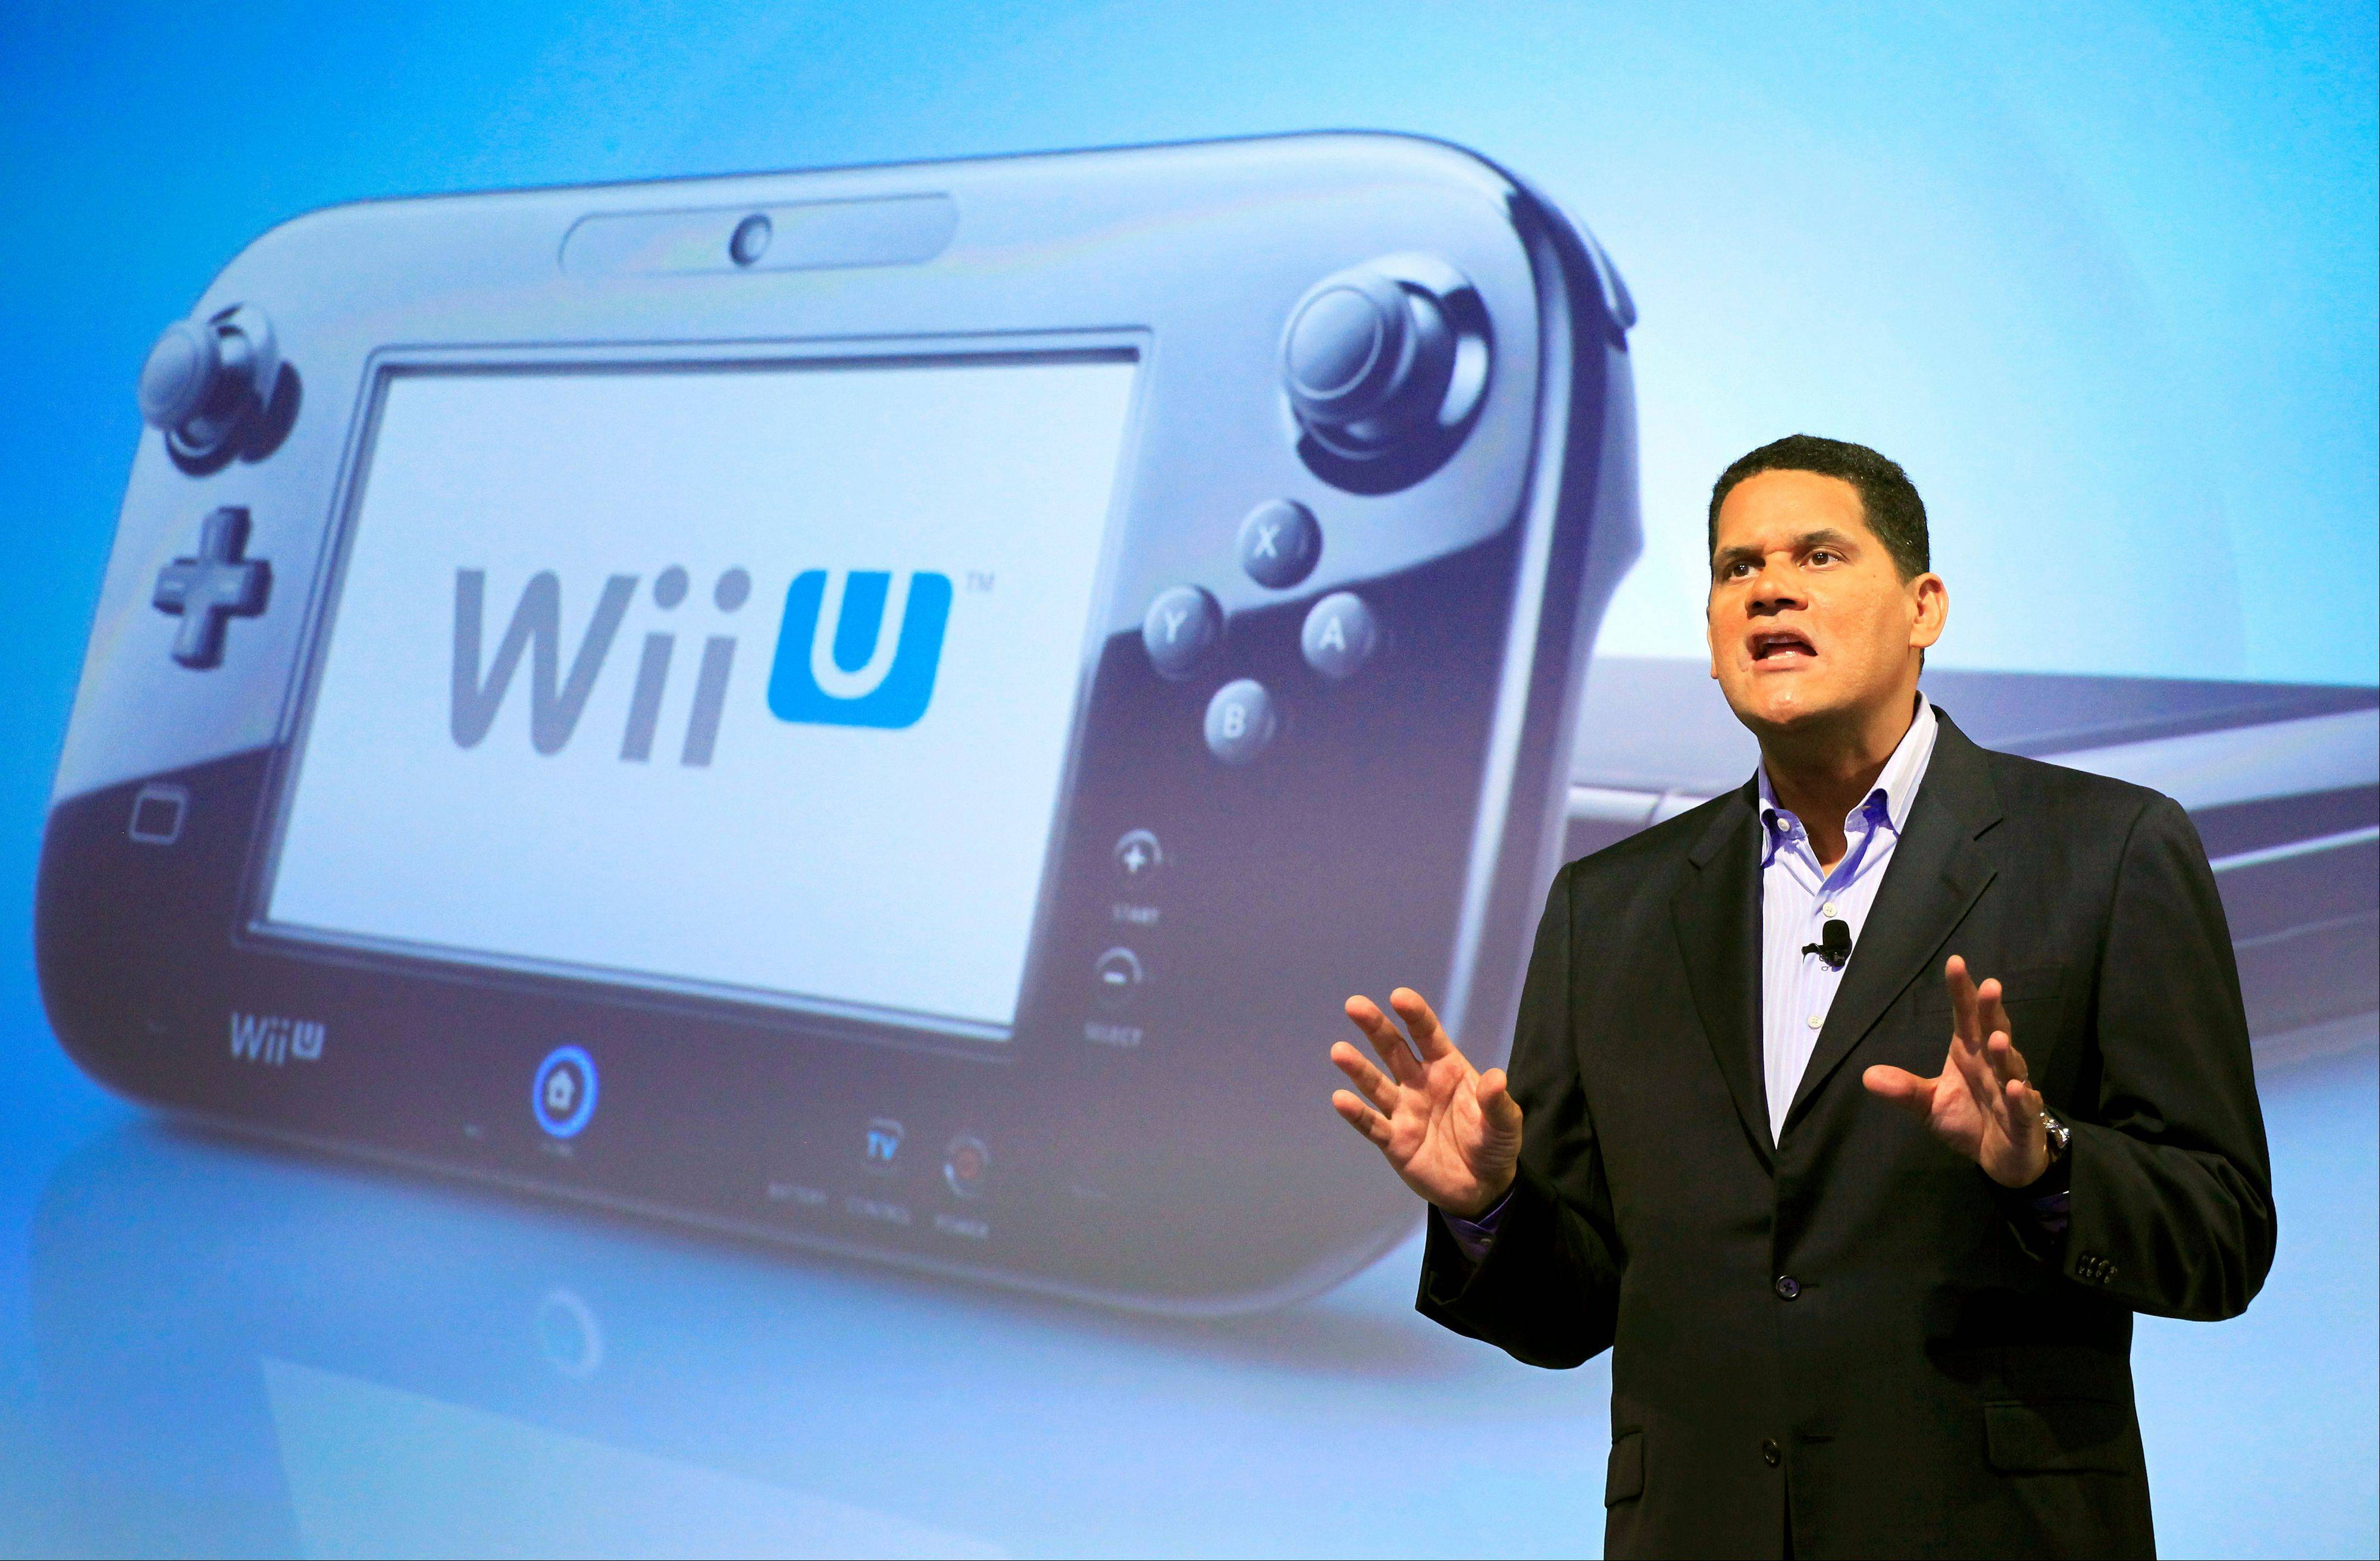 Reggie Fils-Aime, president and chief operating officer of Nintendo of America, discusses the upcoming Wii U gaming console in New York. Much like the iPad, the curvey GamePad for the new Wii U features a touch-screen that can be manipulated with the simple tap or swipe of a finger. The gaming console will start at $300 and go on sale in the U.S. on Sunday, Nov. 18.